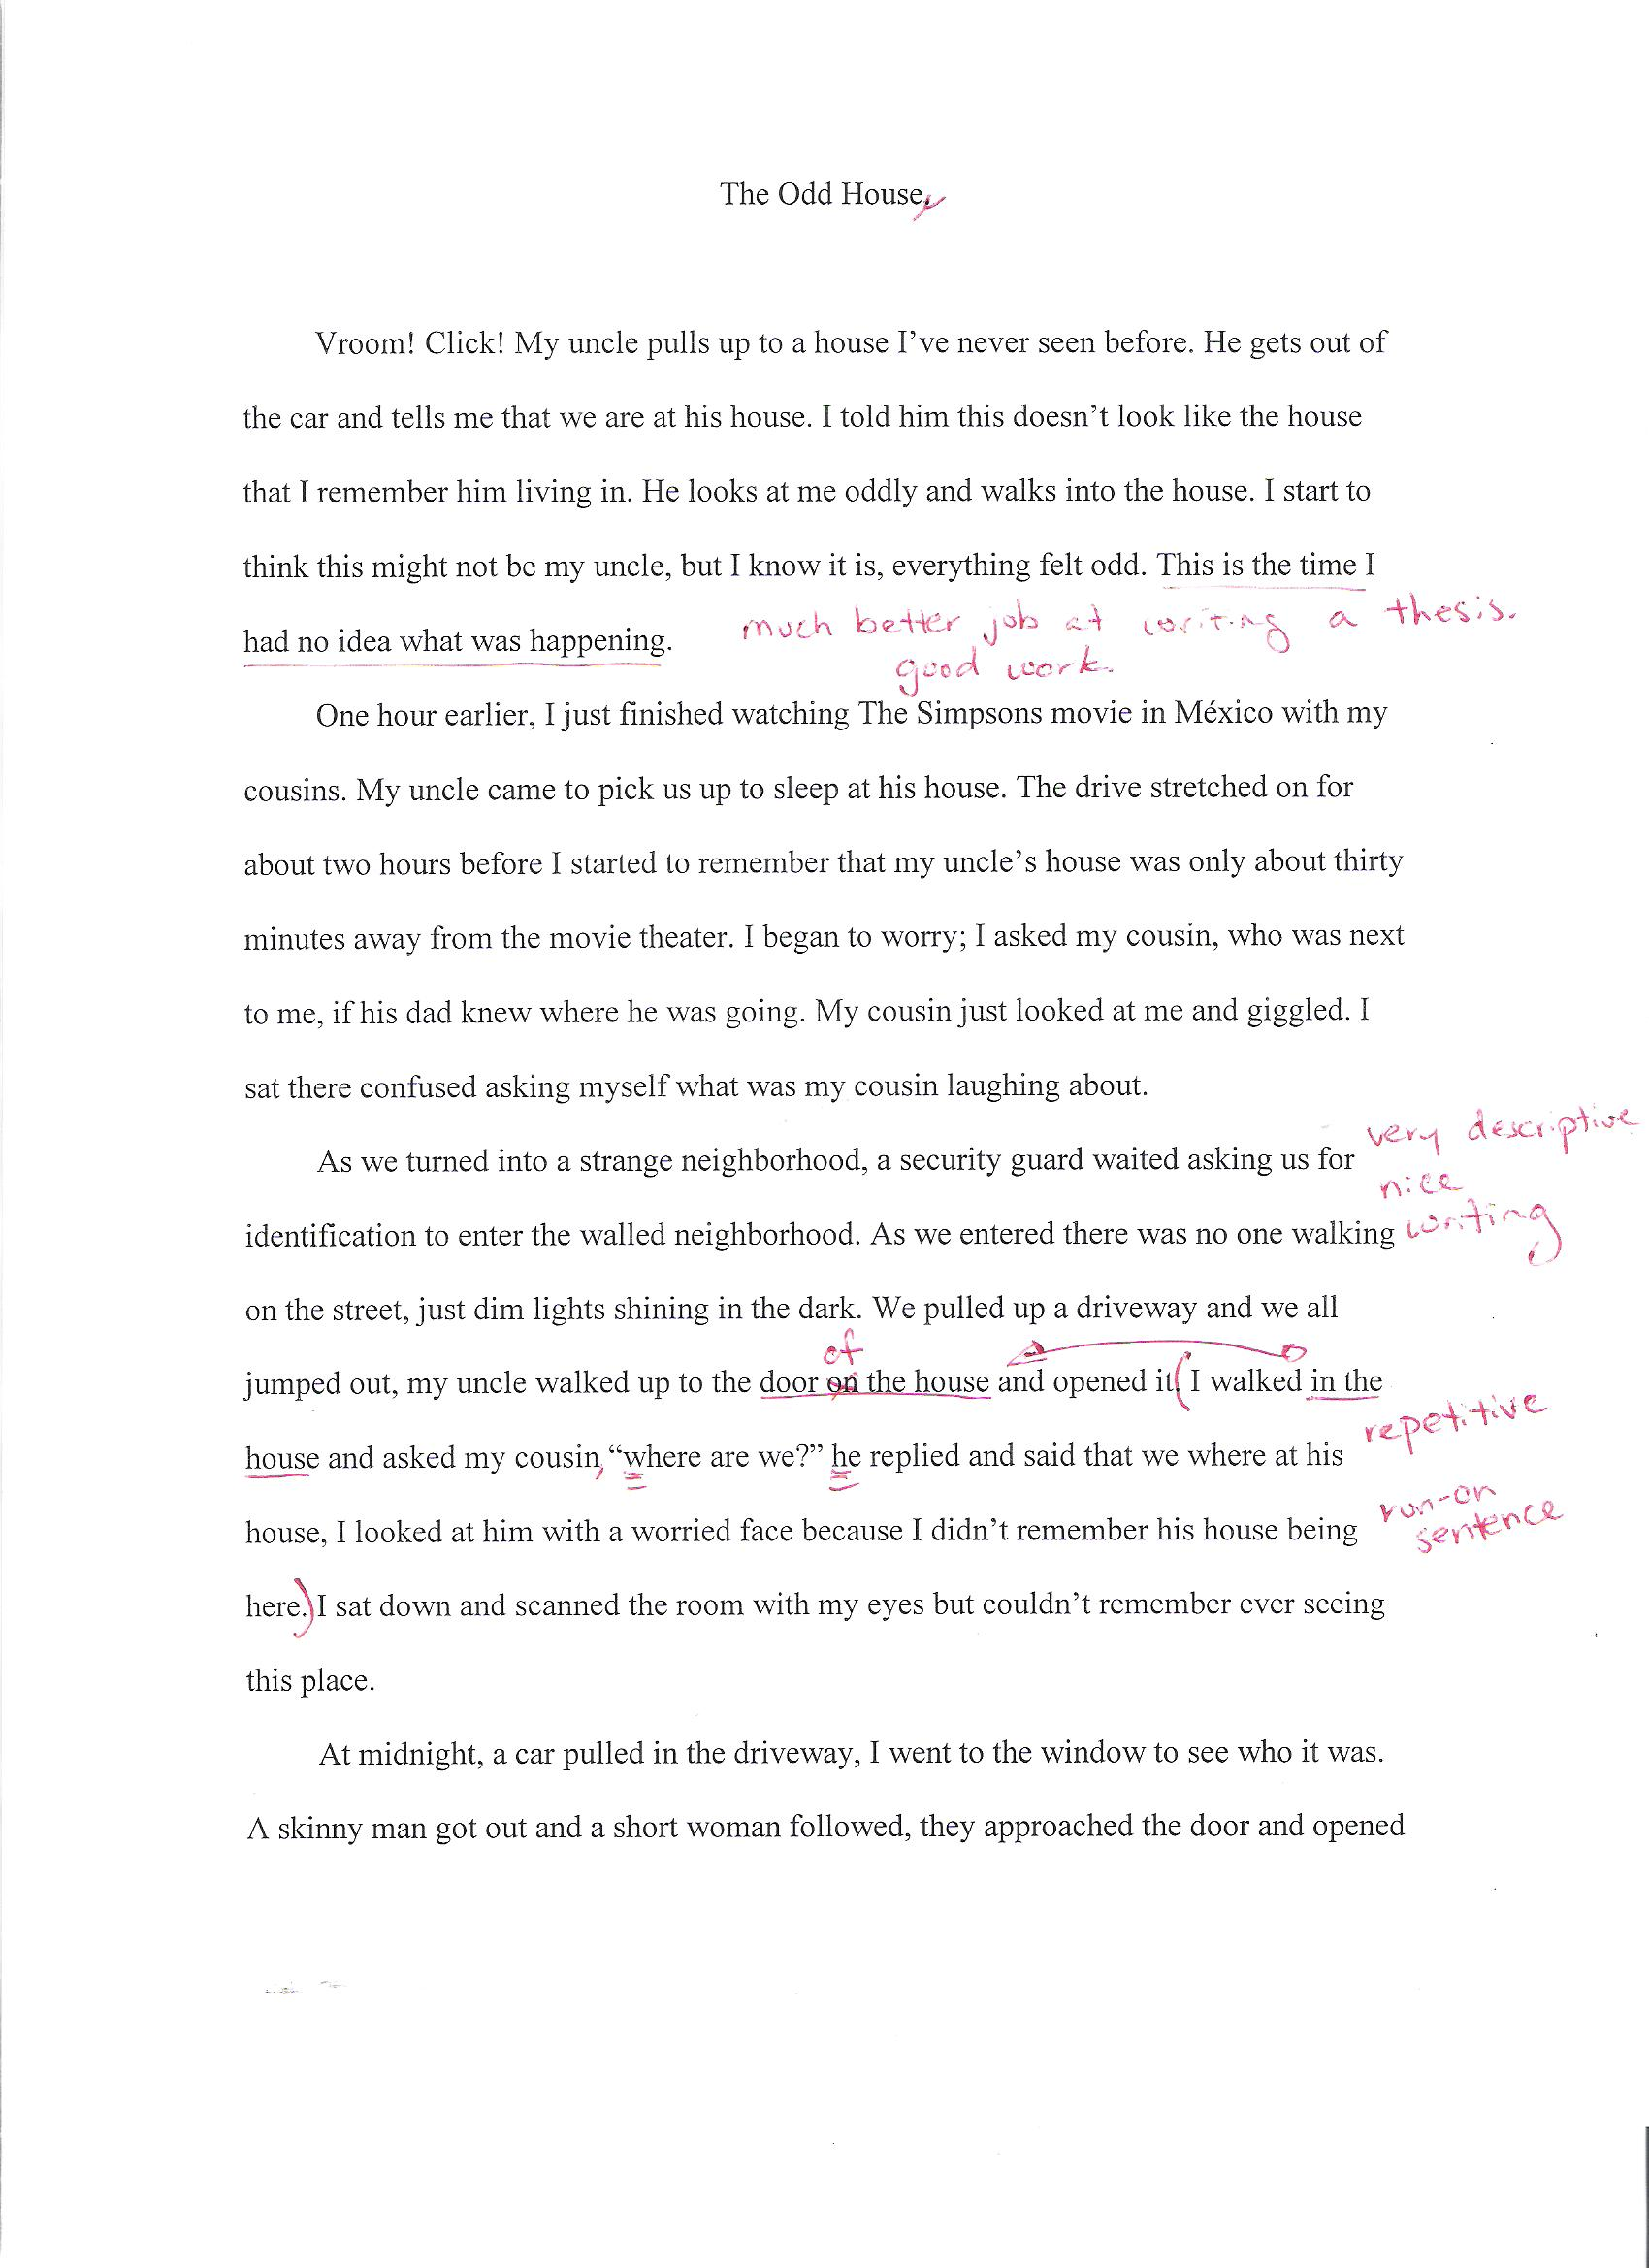 example of autobiography essay autobiography essay example oglasi autobiography essay example oglasi coimage titled write an autobiographical essay step autobiography biography essays sample autobiographysample